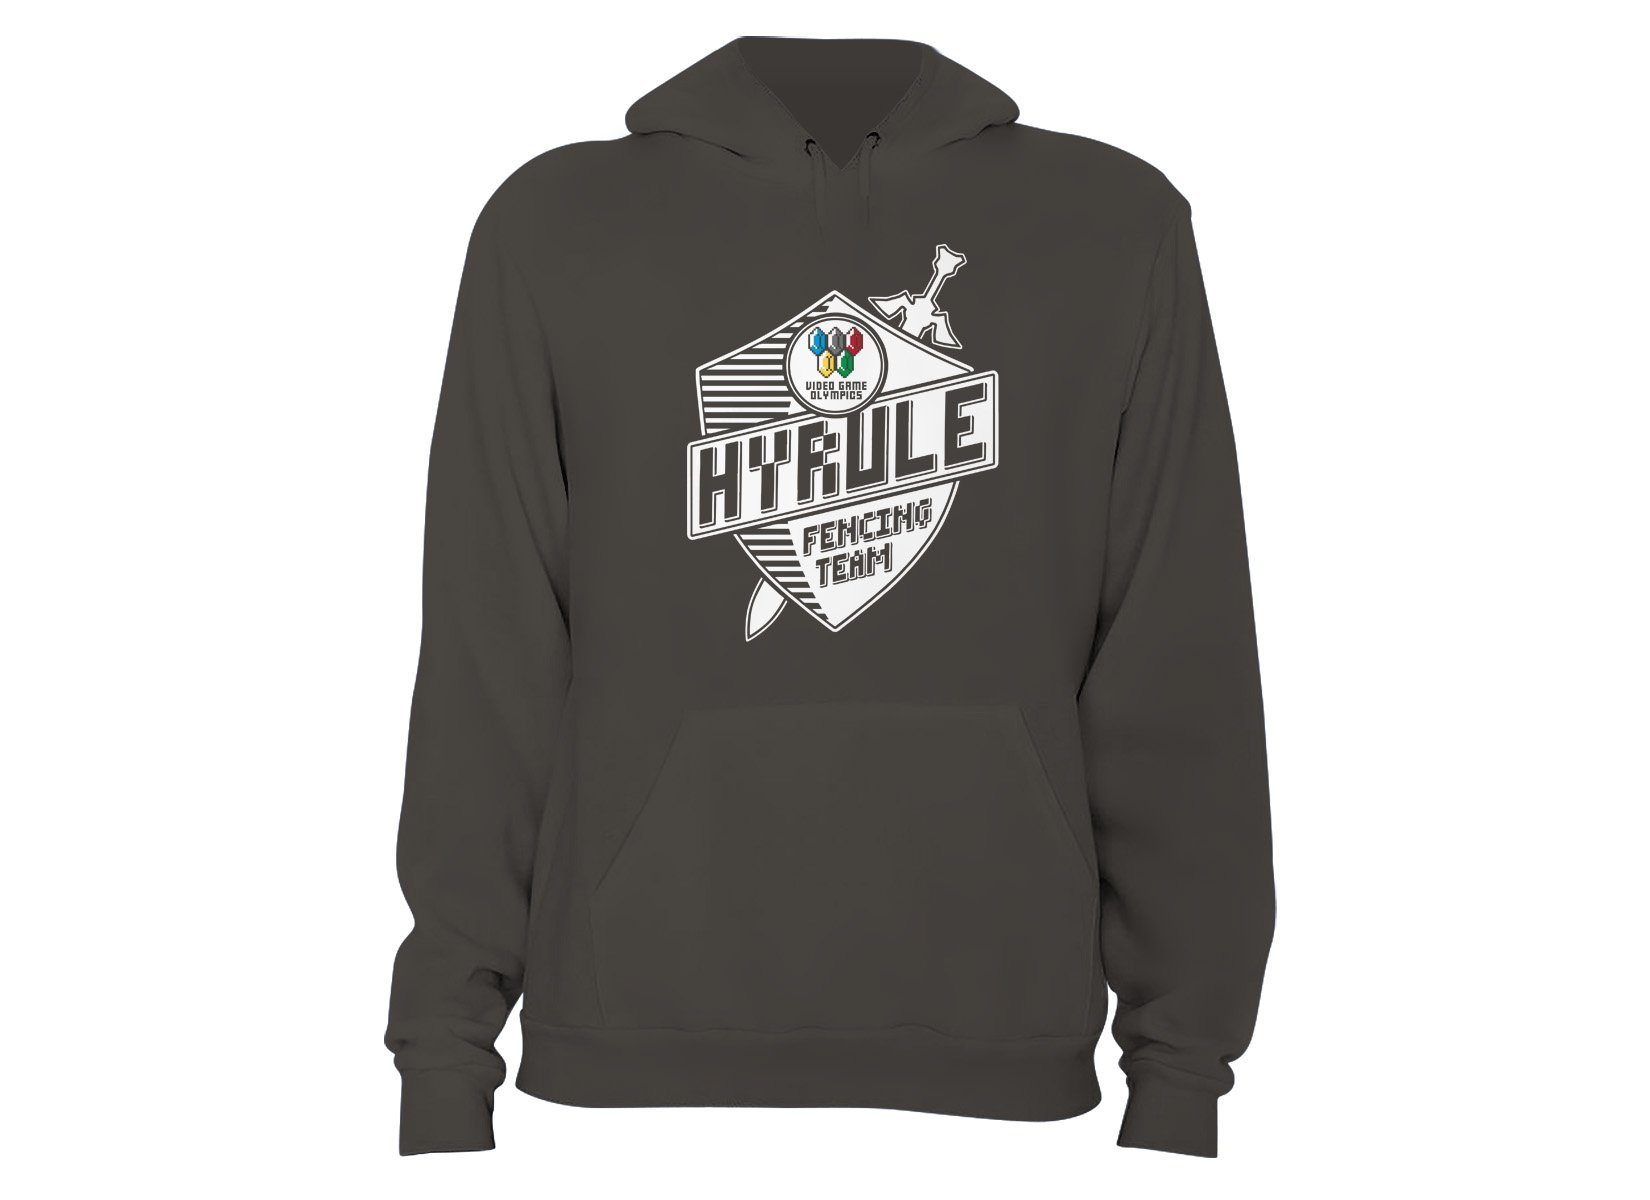 Hyrule Fencing Team on Hoodie